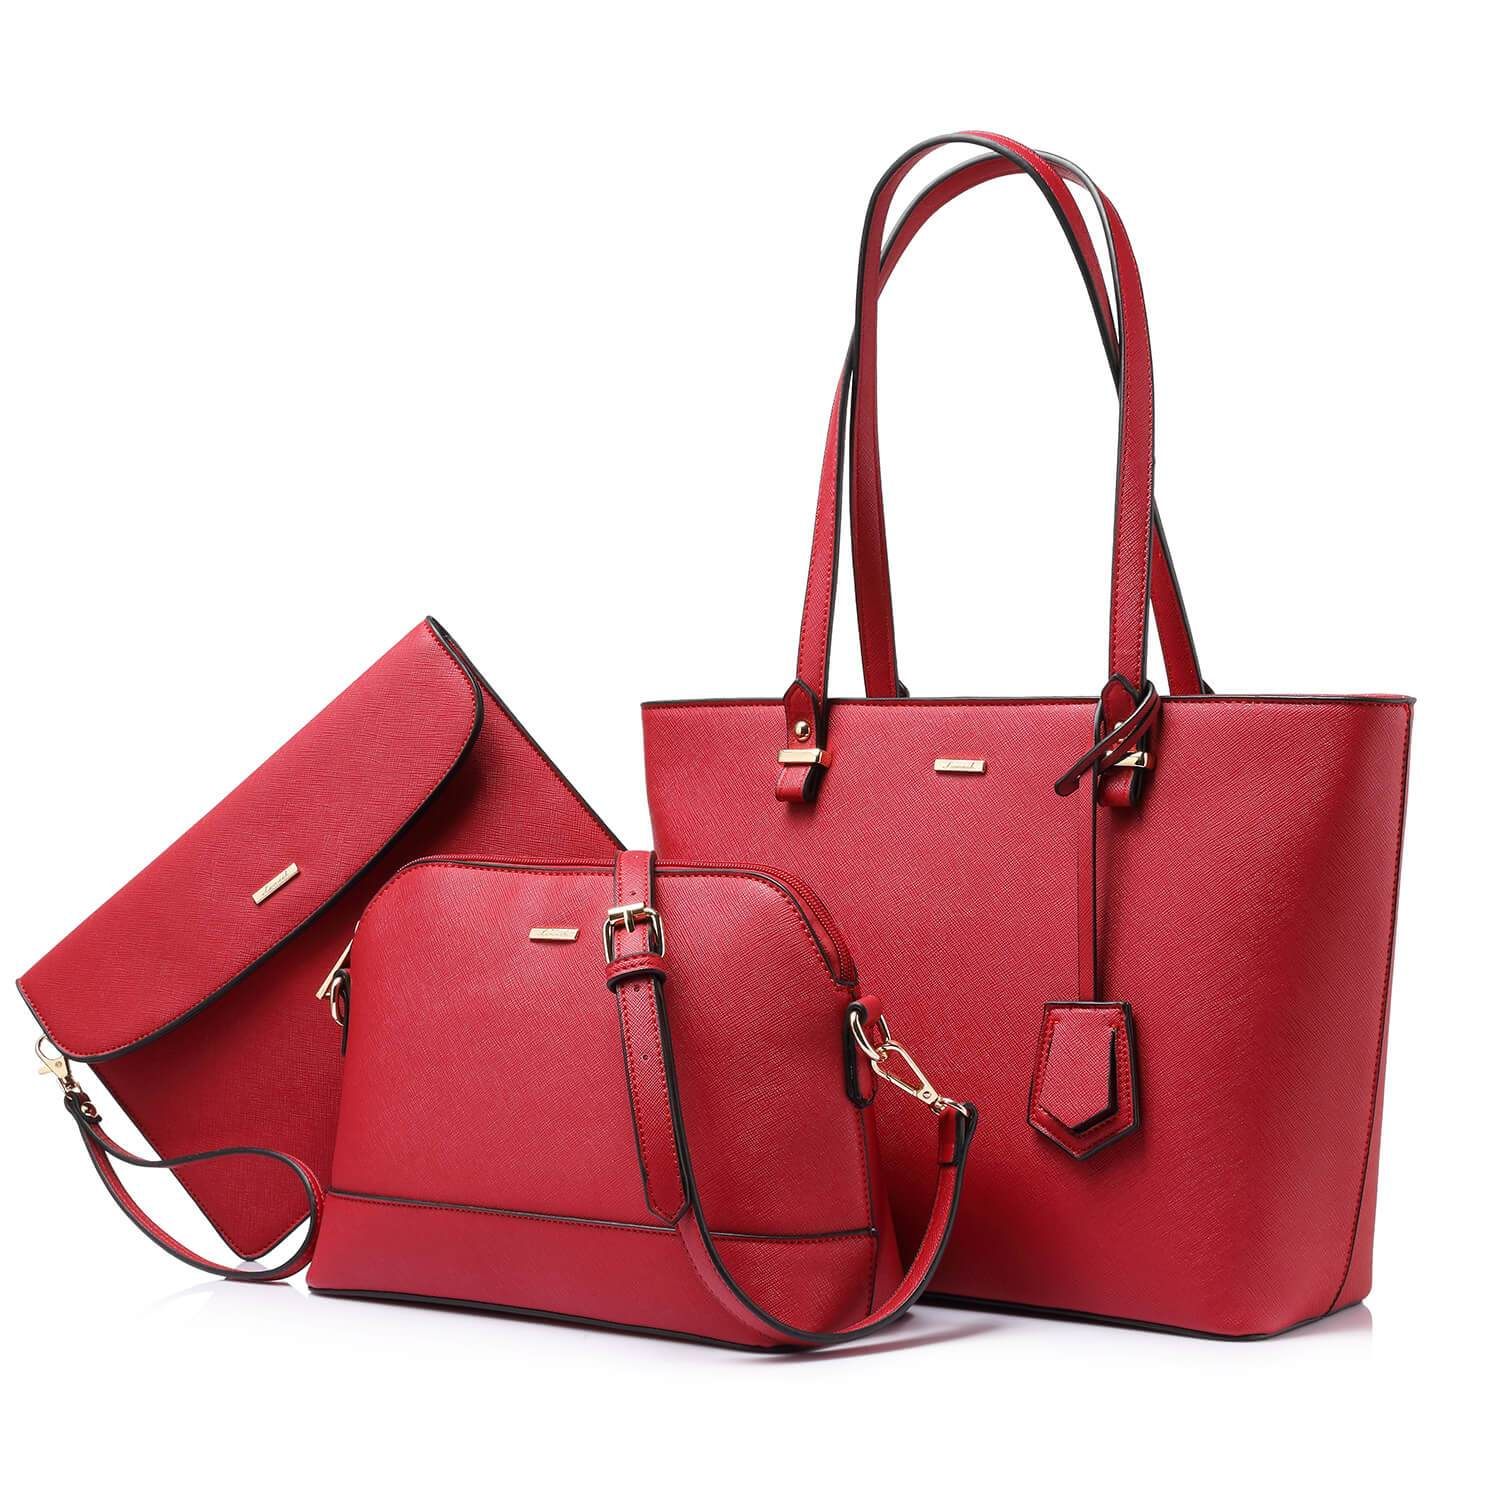 Lovevook-handbag-composite-bag-RHNWB0976-Wine-Red-positive